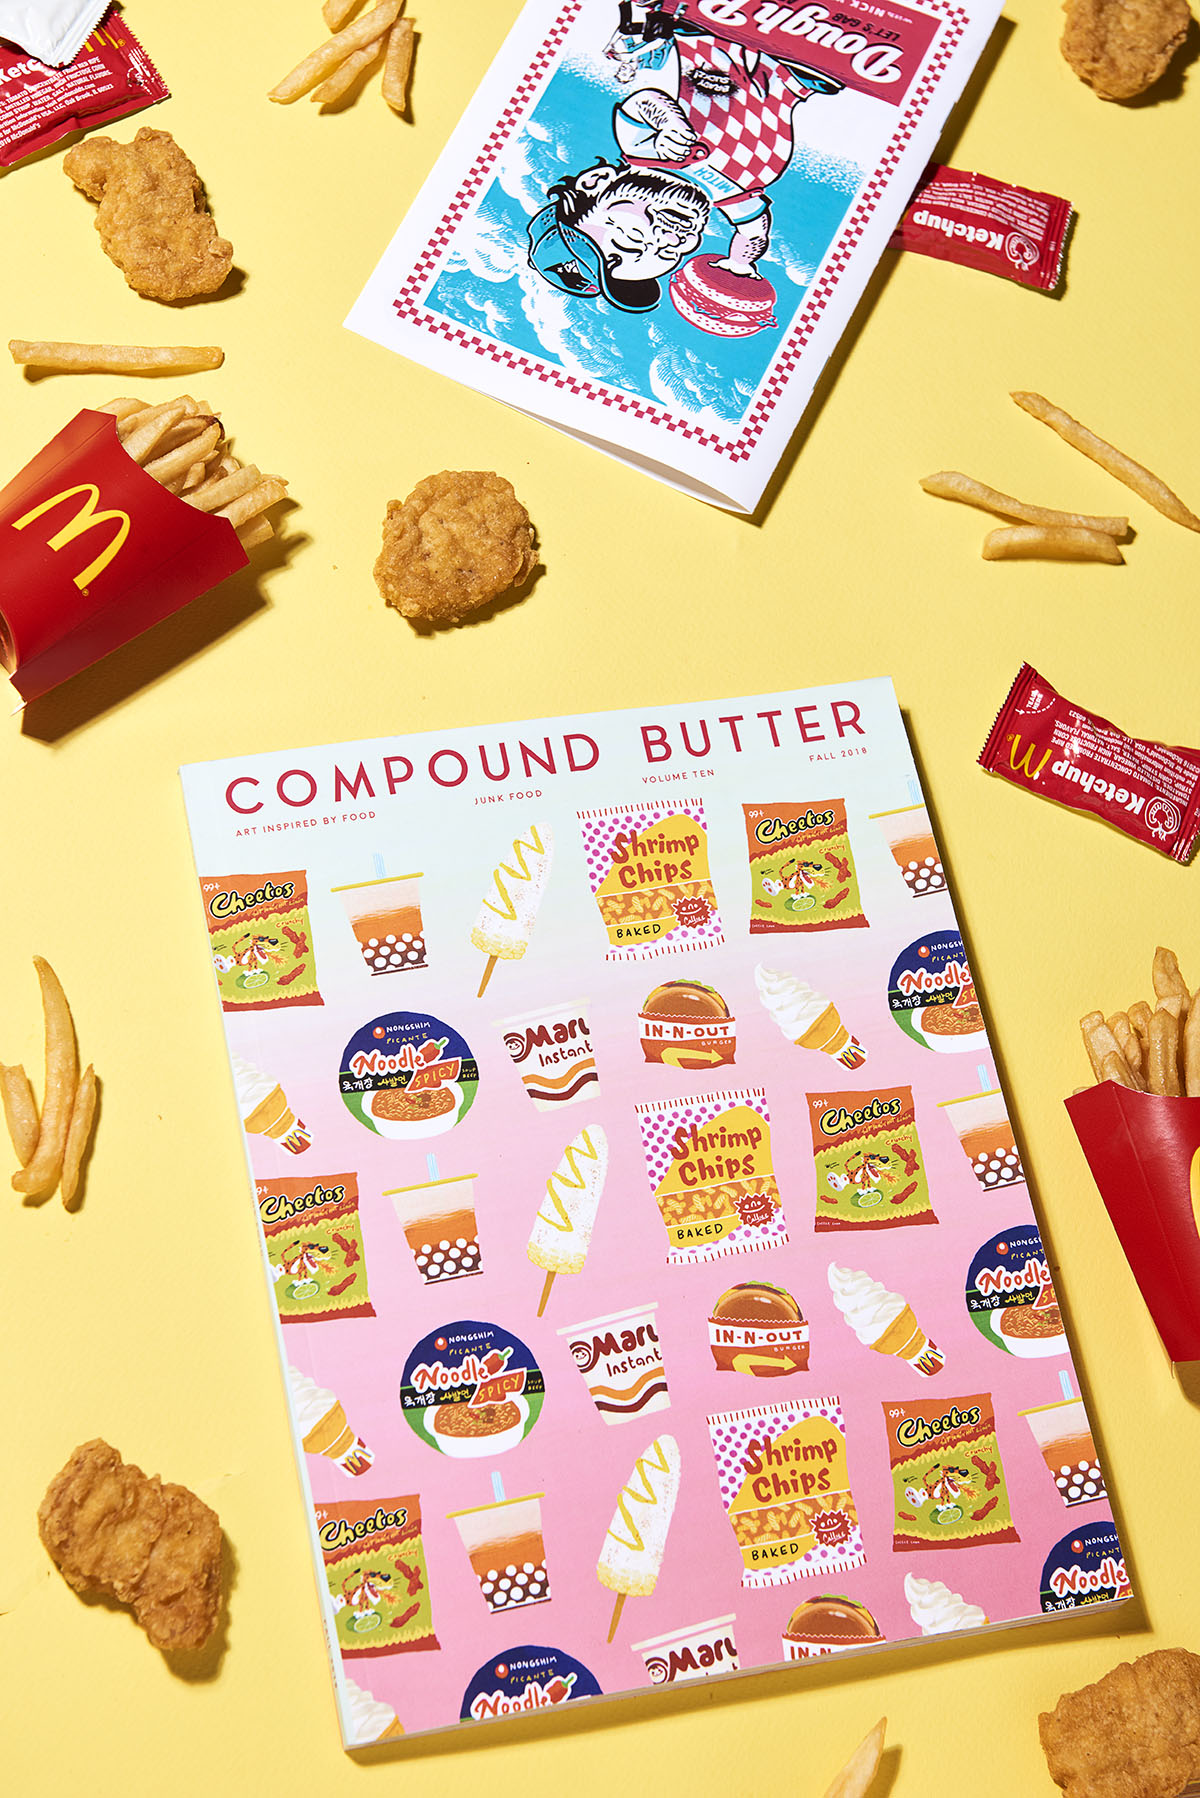 Compund Butter – Junk Food – McDonalds Yellow – web